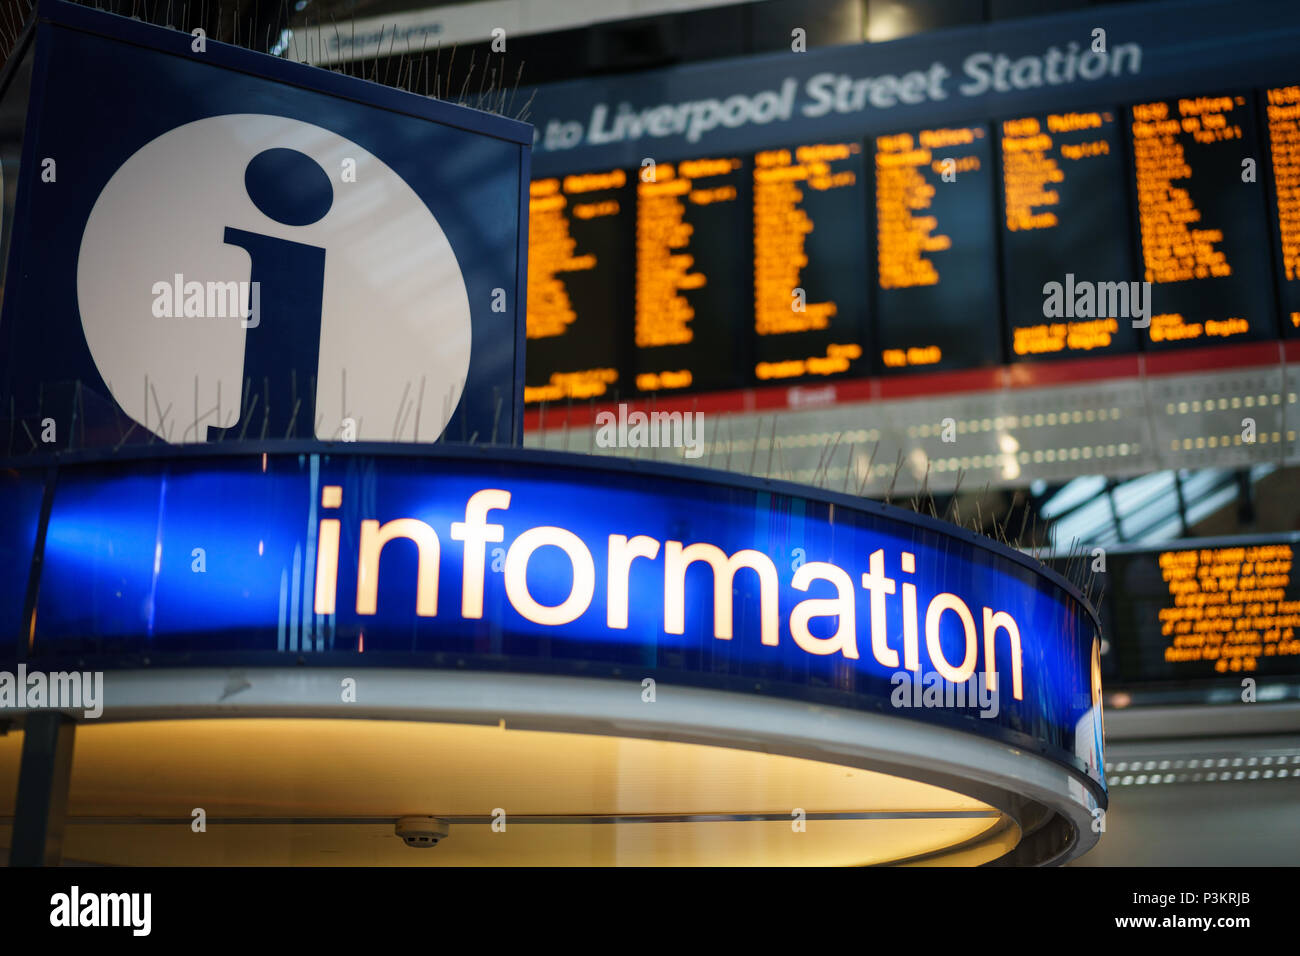 London, UK - November 2017. Information booth in Liverpool Street Station, one of the busiest train and underground stations in London. - Stock Image